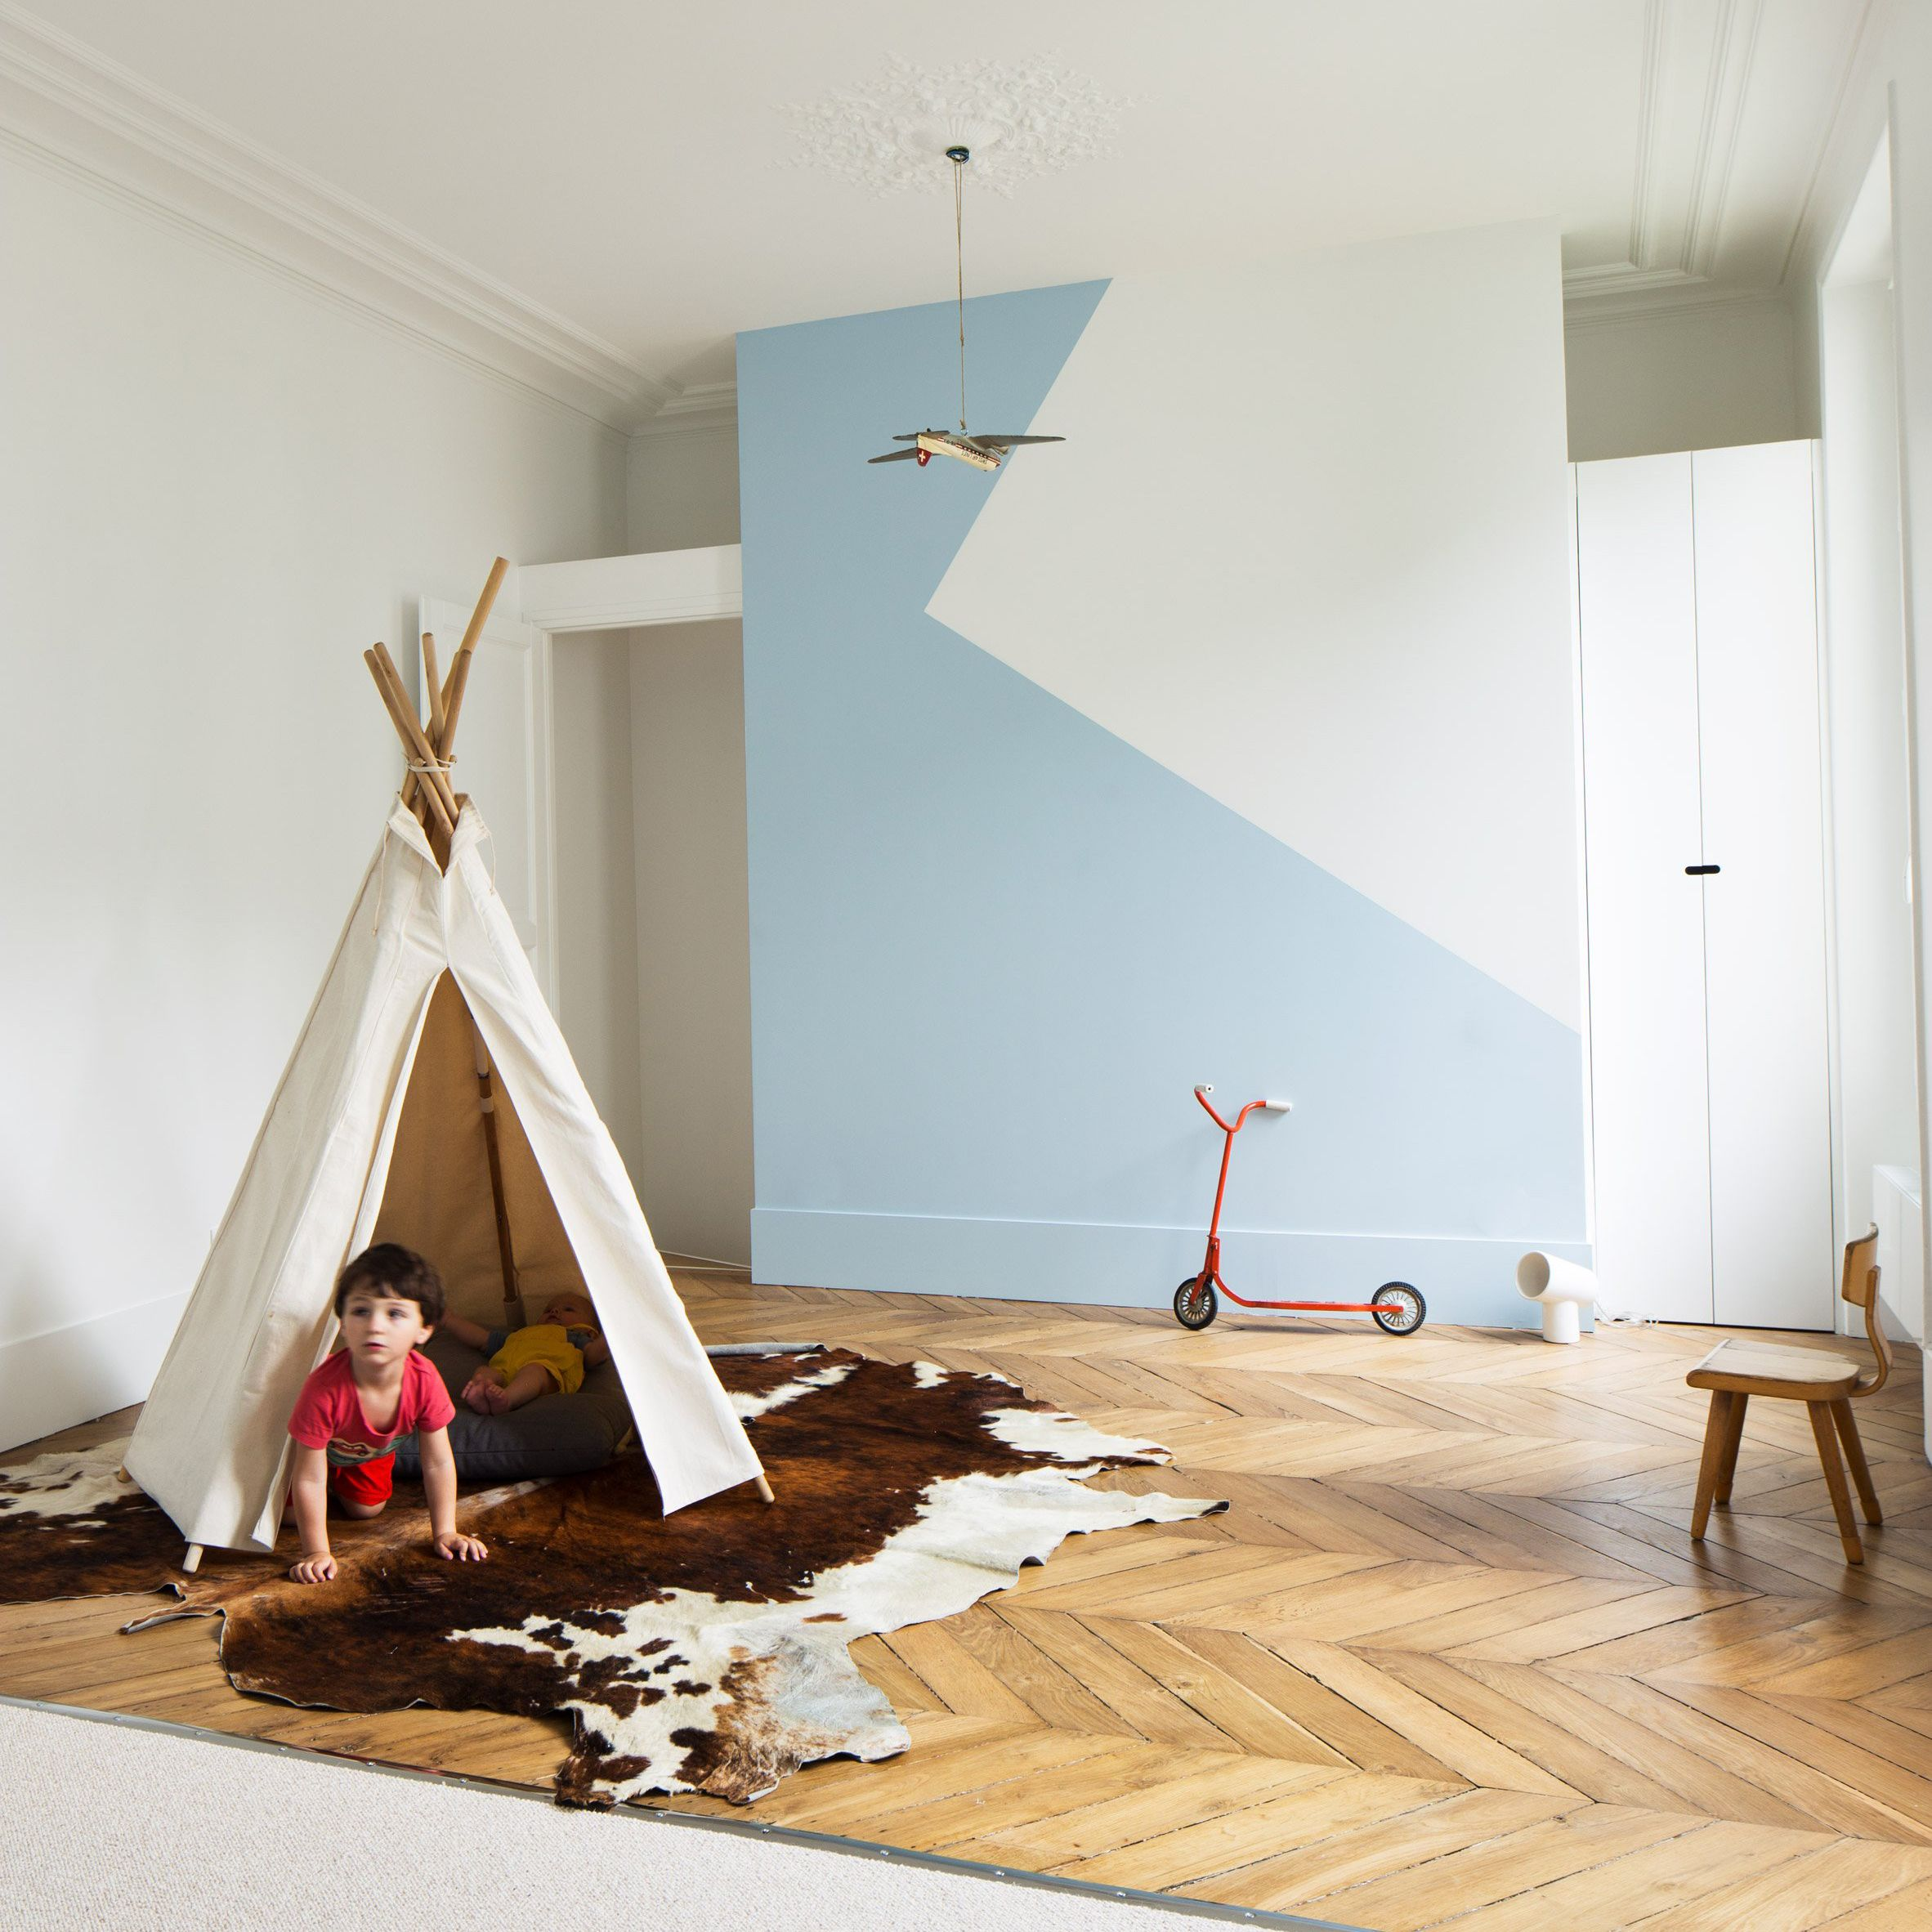 10 children's rooms that show the fun side of interior design